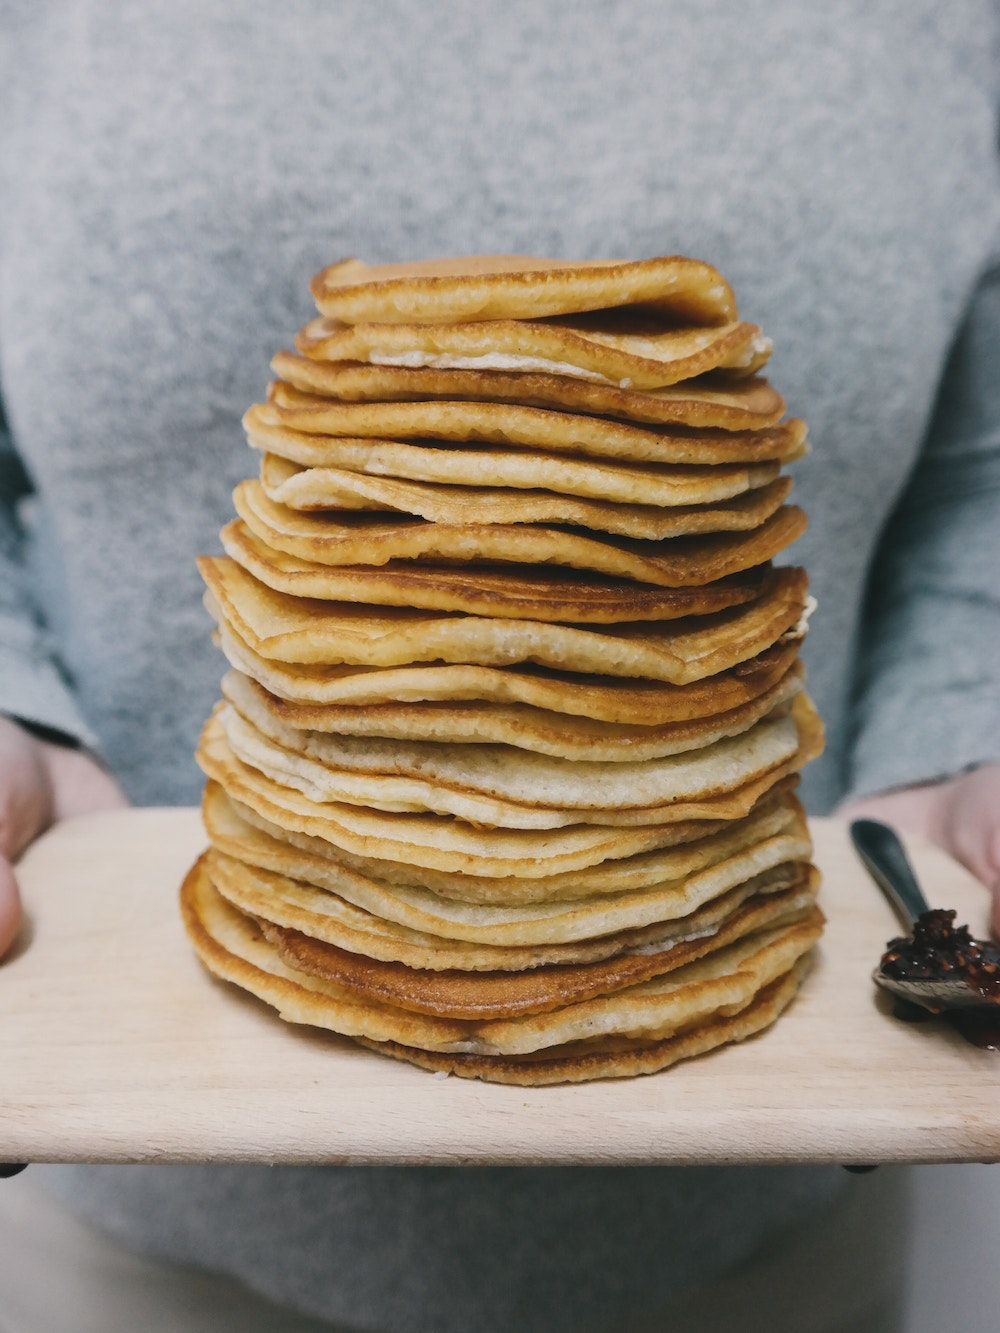 How To Host A Pancake Breakfast Fundraiser